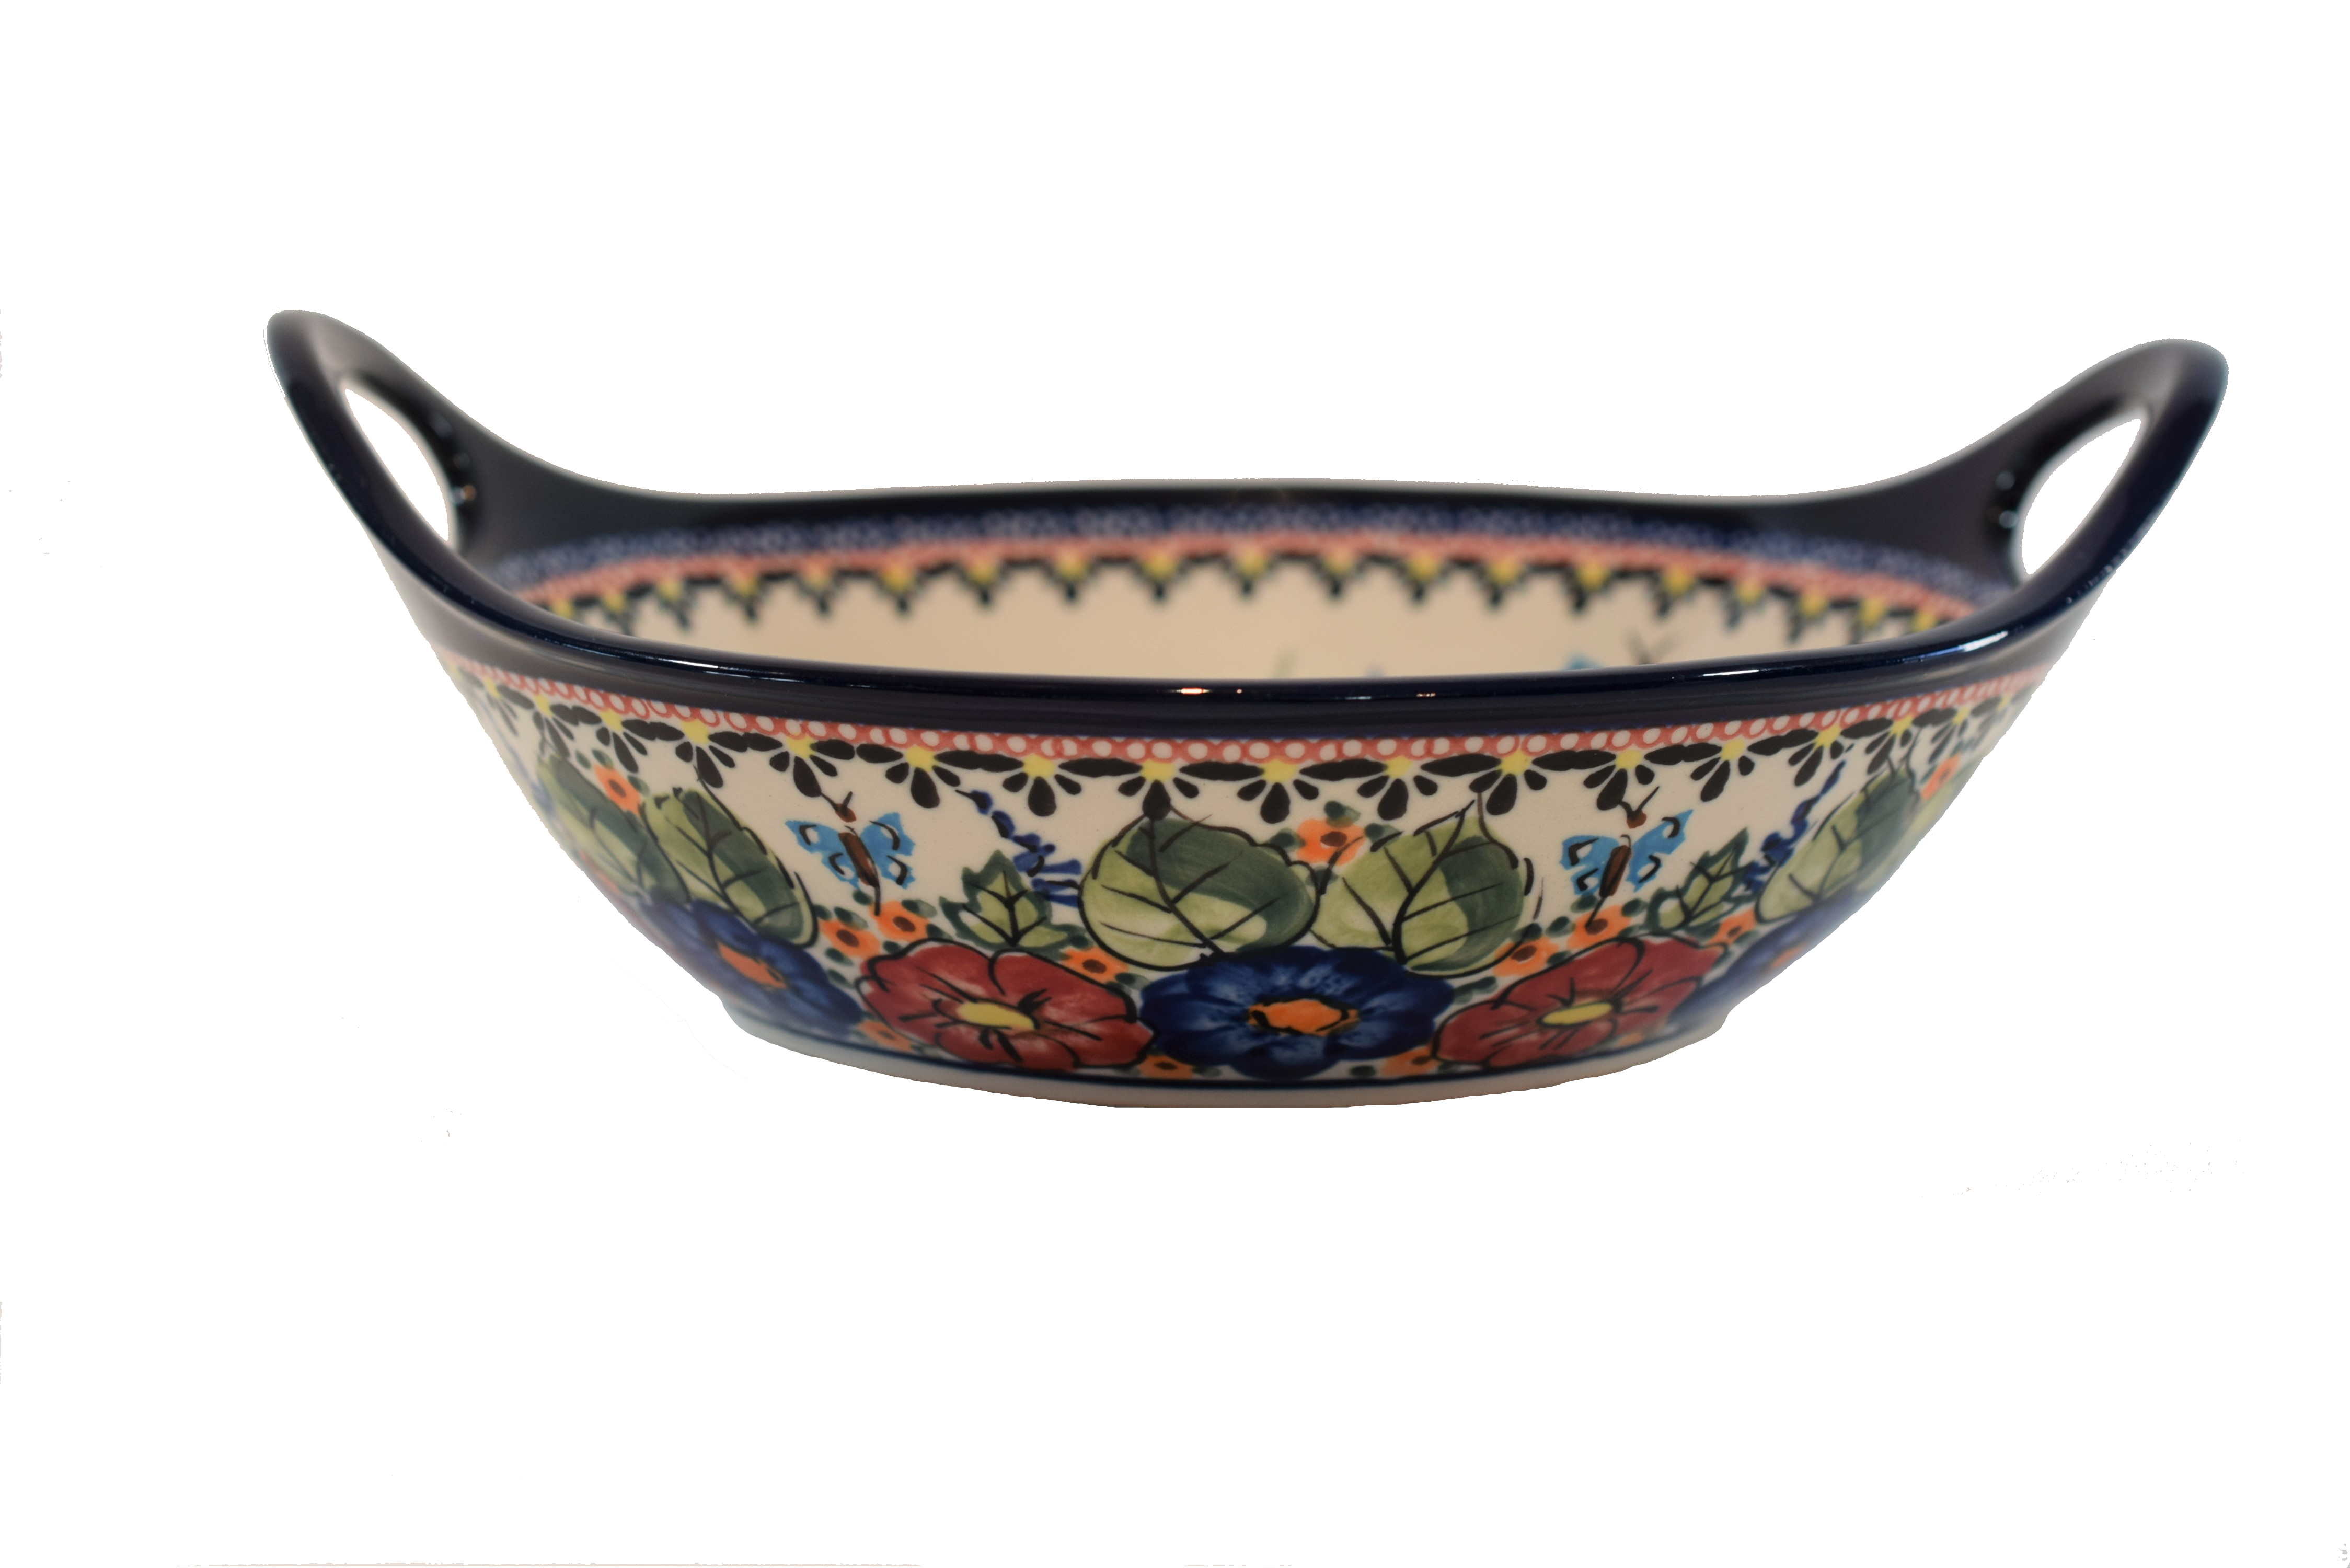 """Potter Avenue Butterfly Merry Making 11.5"""" Handled Stoneware Bowl-Baker (MD) - 1814-149AR BUTTERFLY MERRY MAKING"""